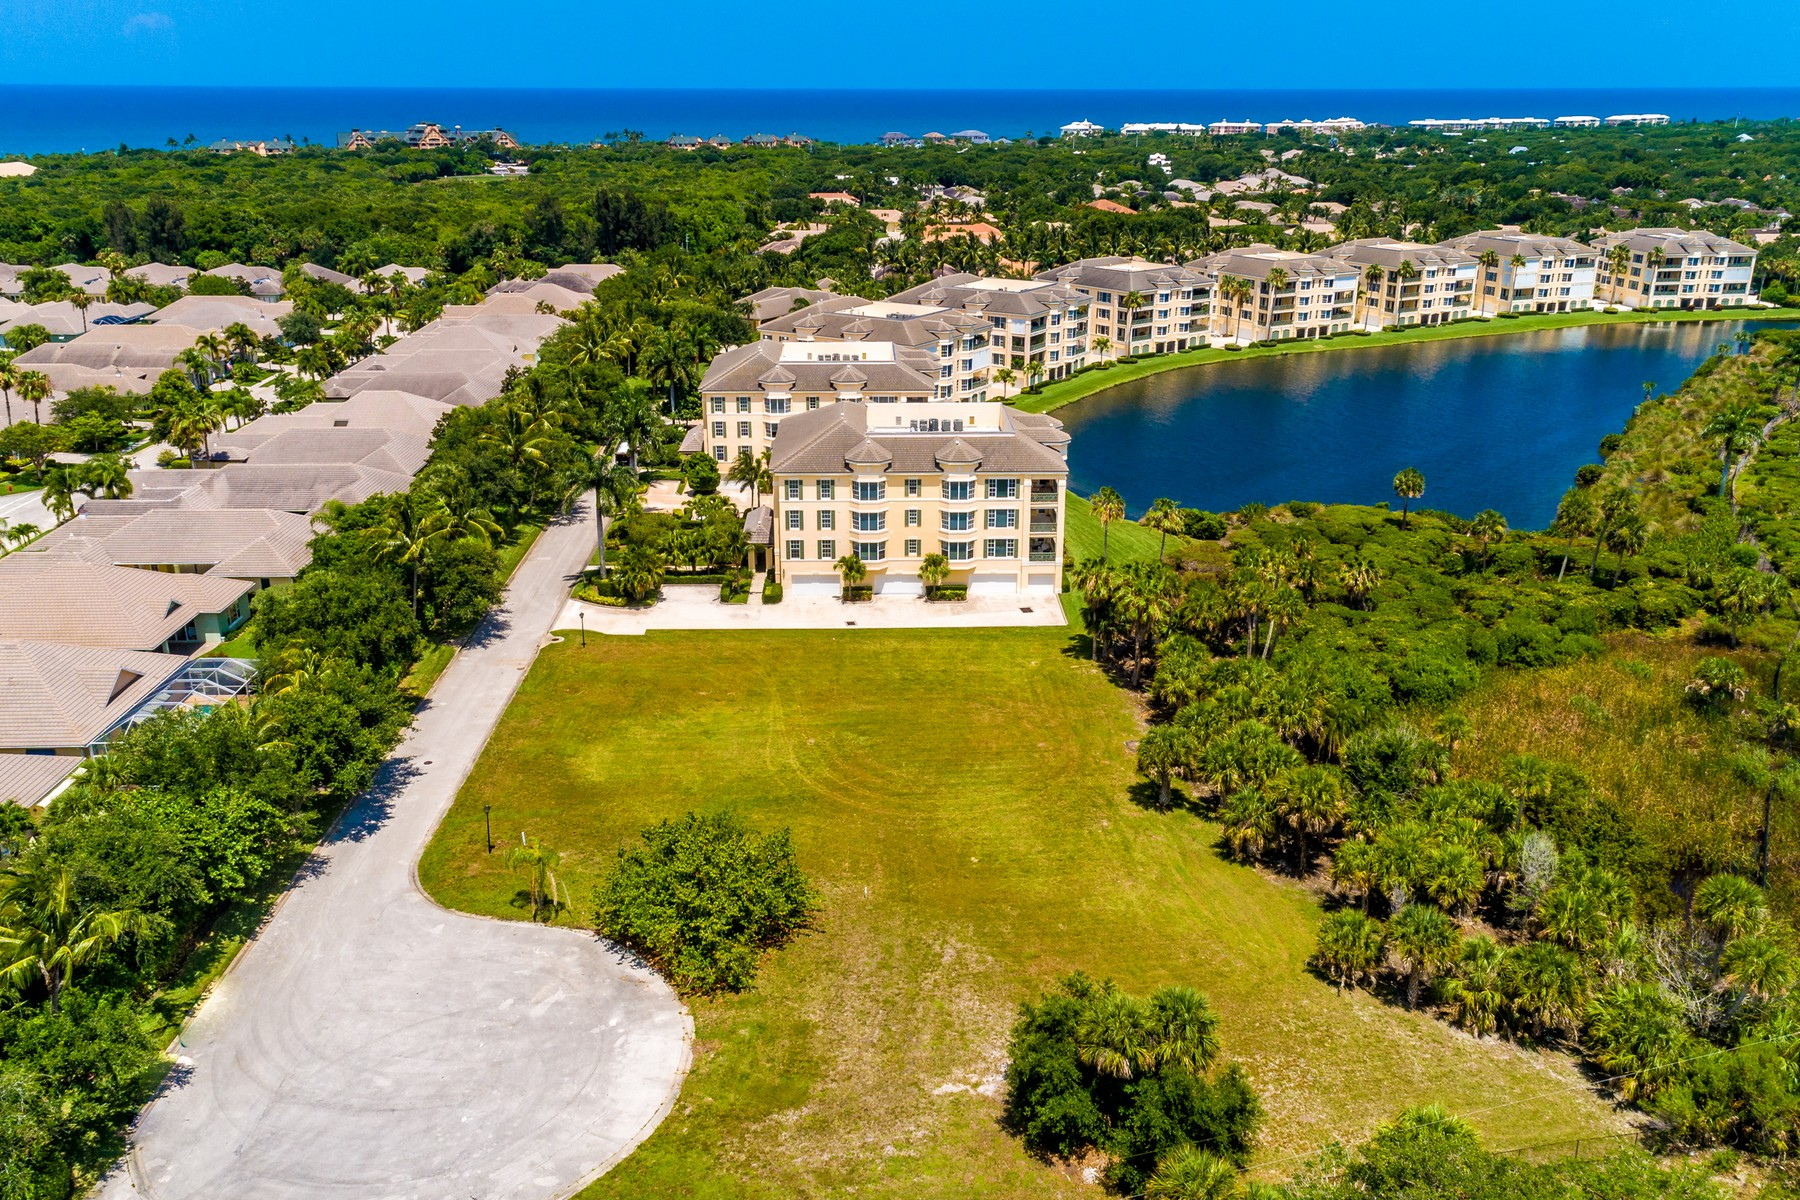 Property для того Продажа на Spectacular Direct Riverfront Condo Sites 0 Somerset Bay Lane Vero Beach, Флорида 32963 Соединенные Штаты